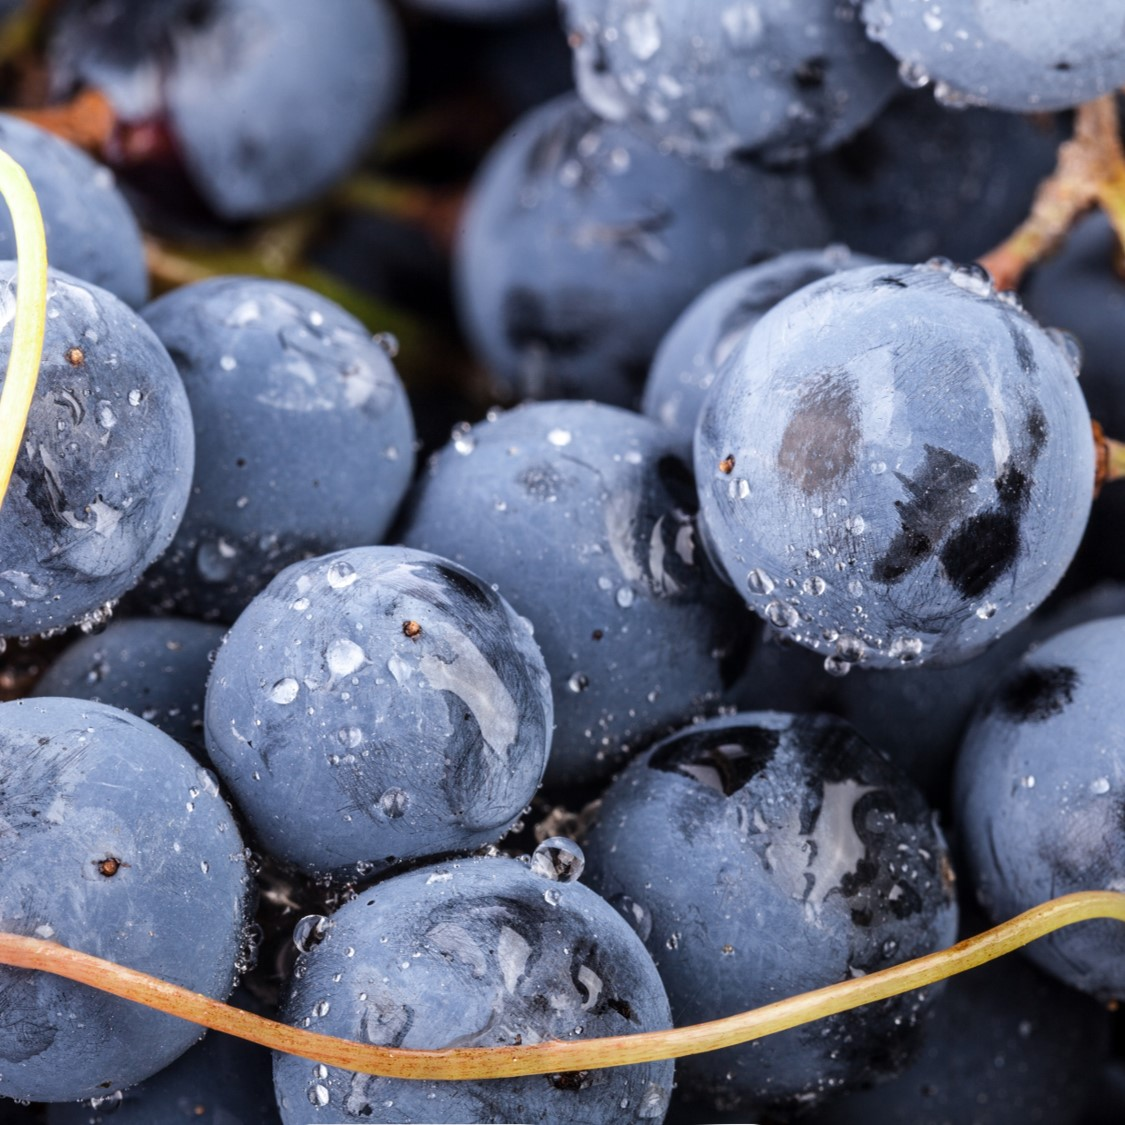 grapes - Getting back to nature